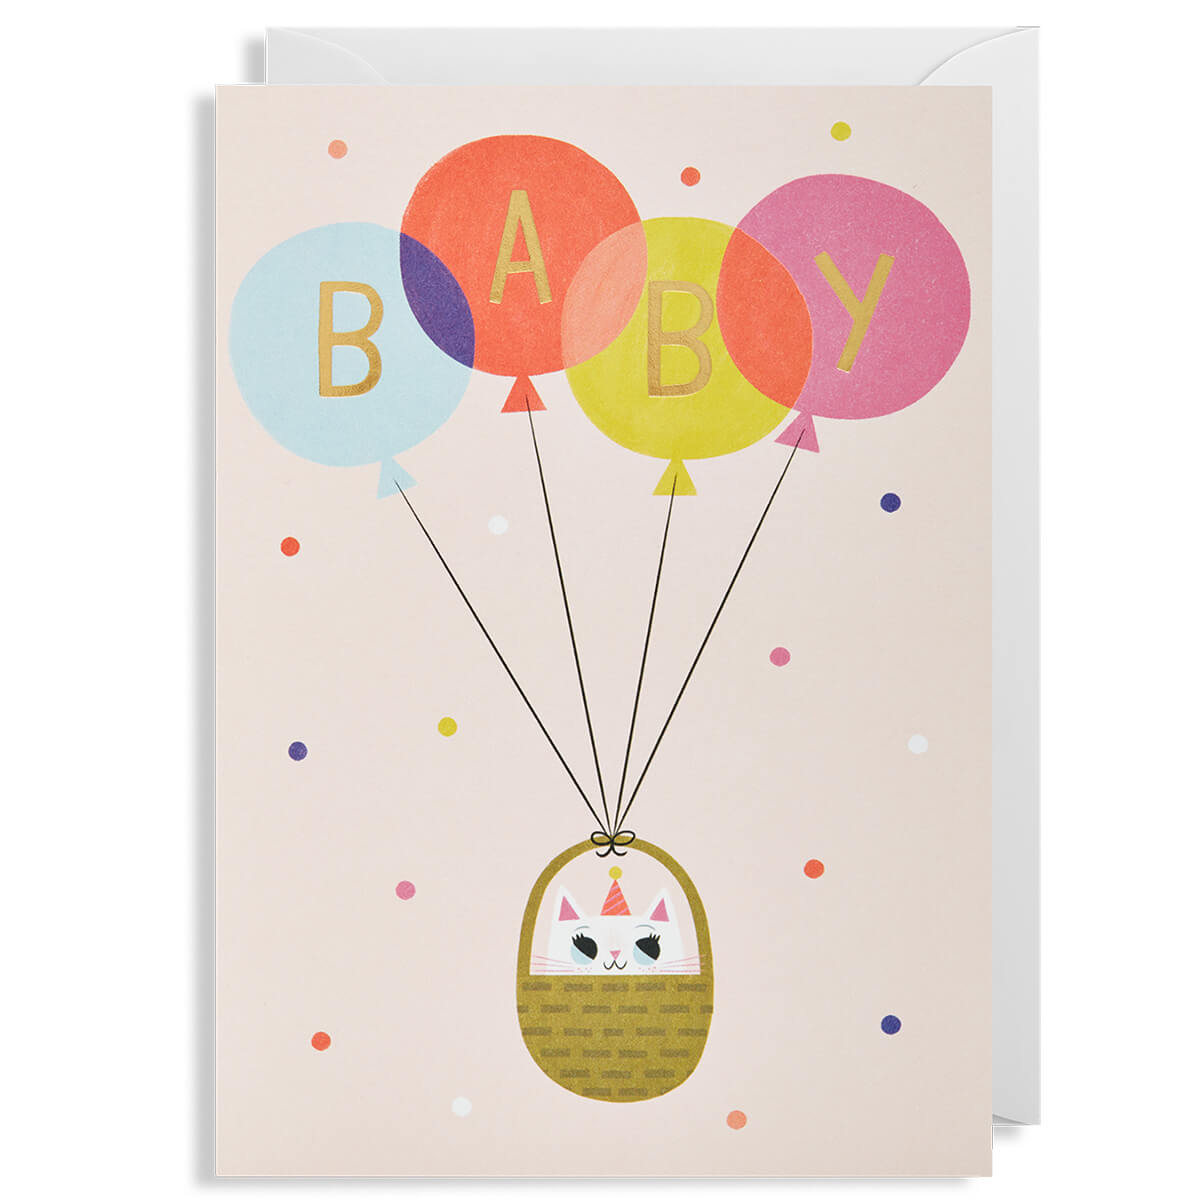 Baby girl greetings card by allison black for lagom design junior baby girl greetings card by allison black for lagom design junior edition m4hsunfo